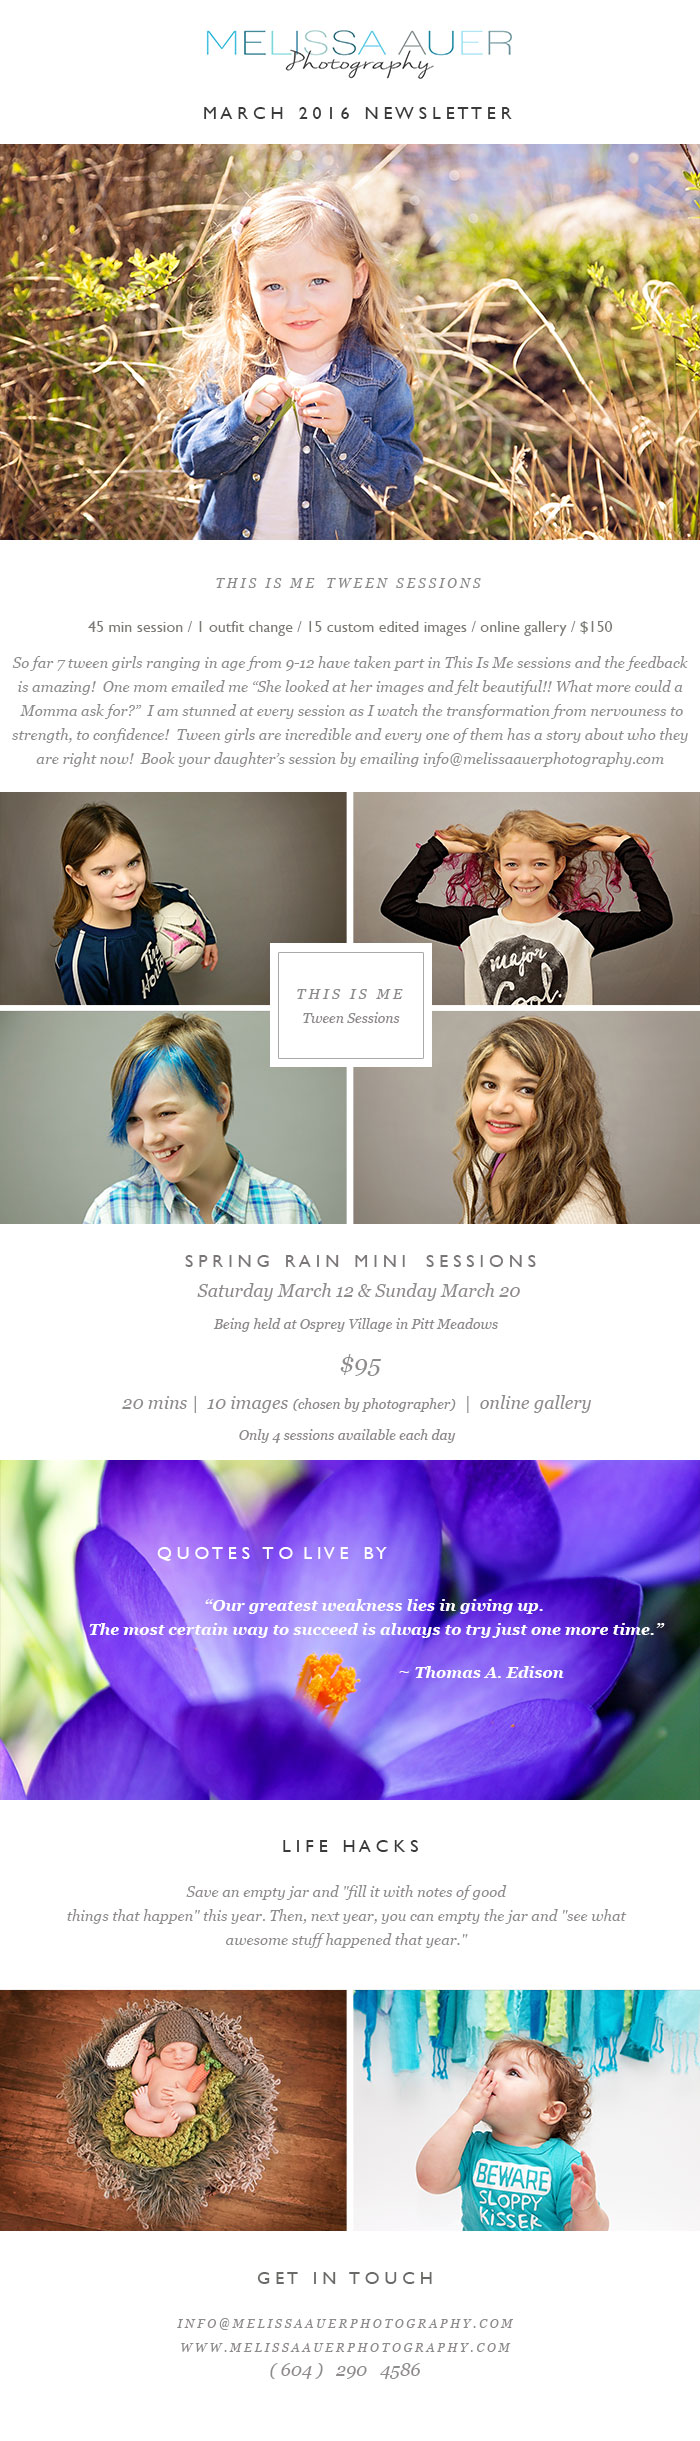 March Newsletter 2016 - Melissa Auer Photography